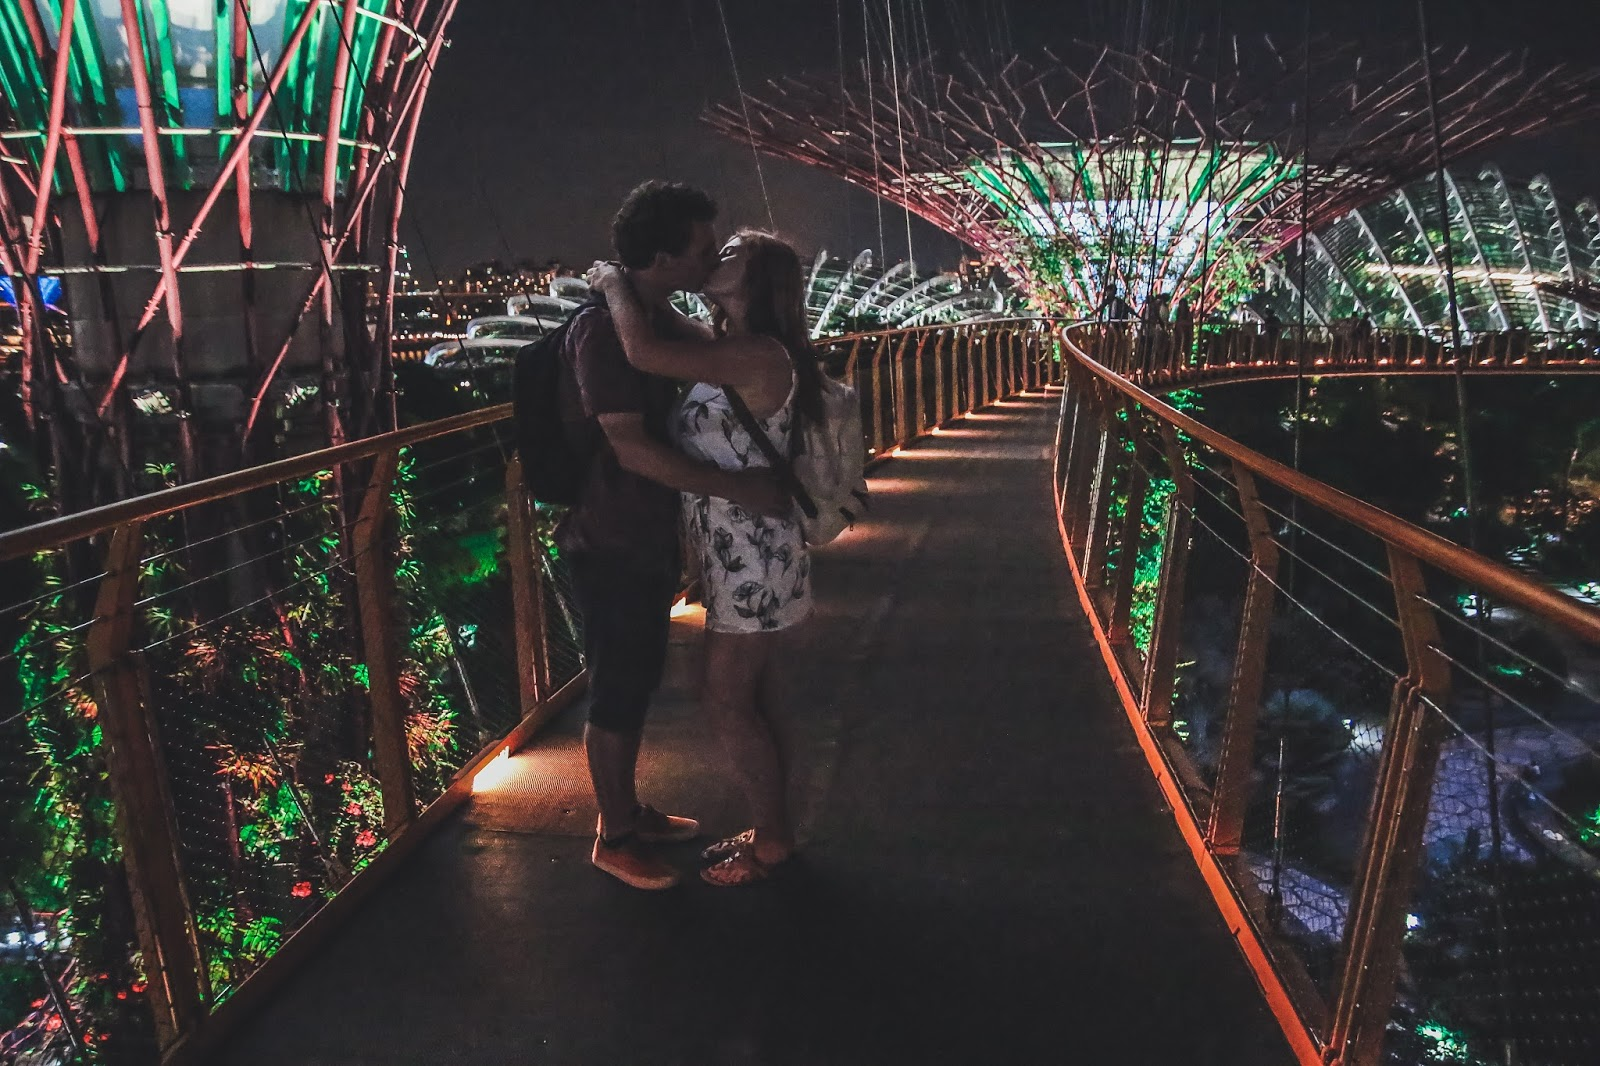 Free Romantic Date Ideas in Singapore